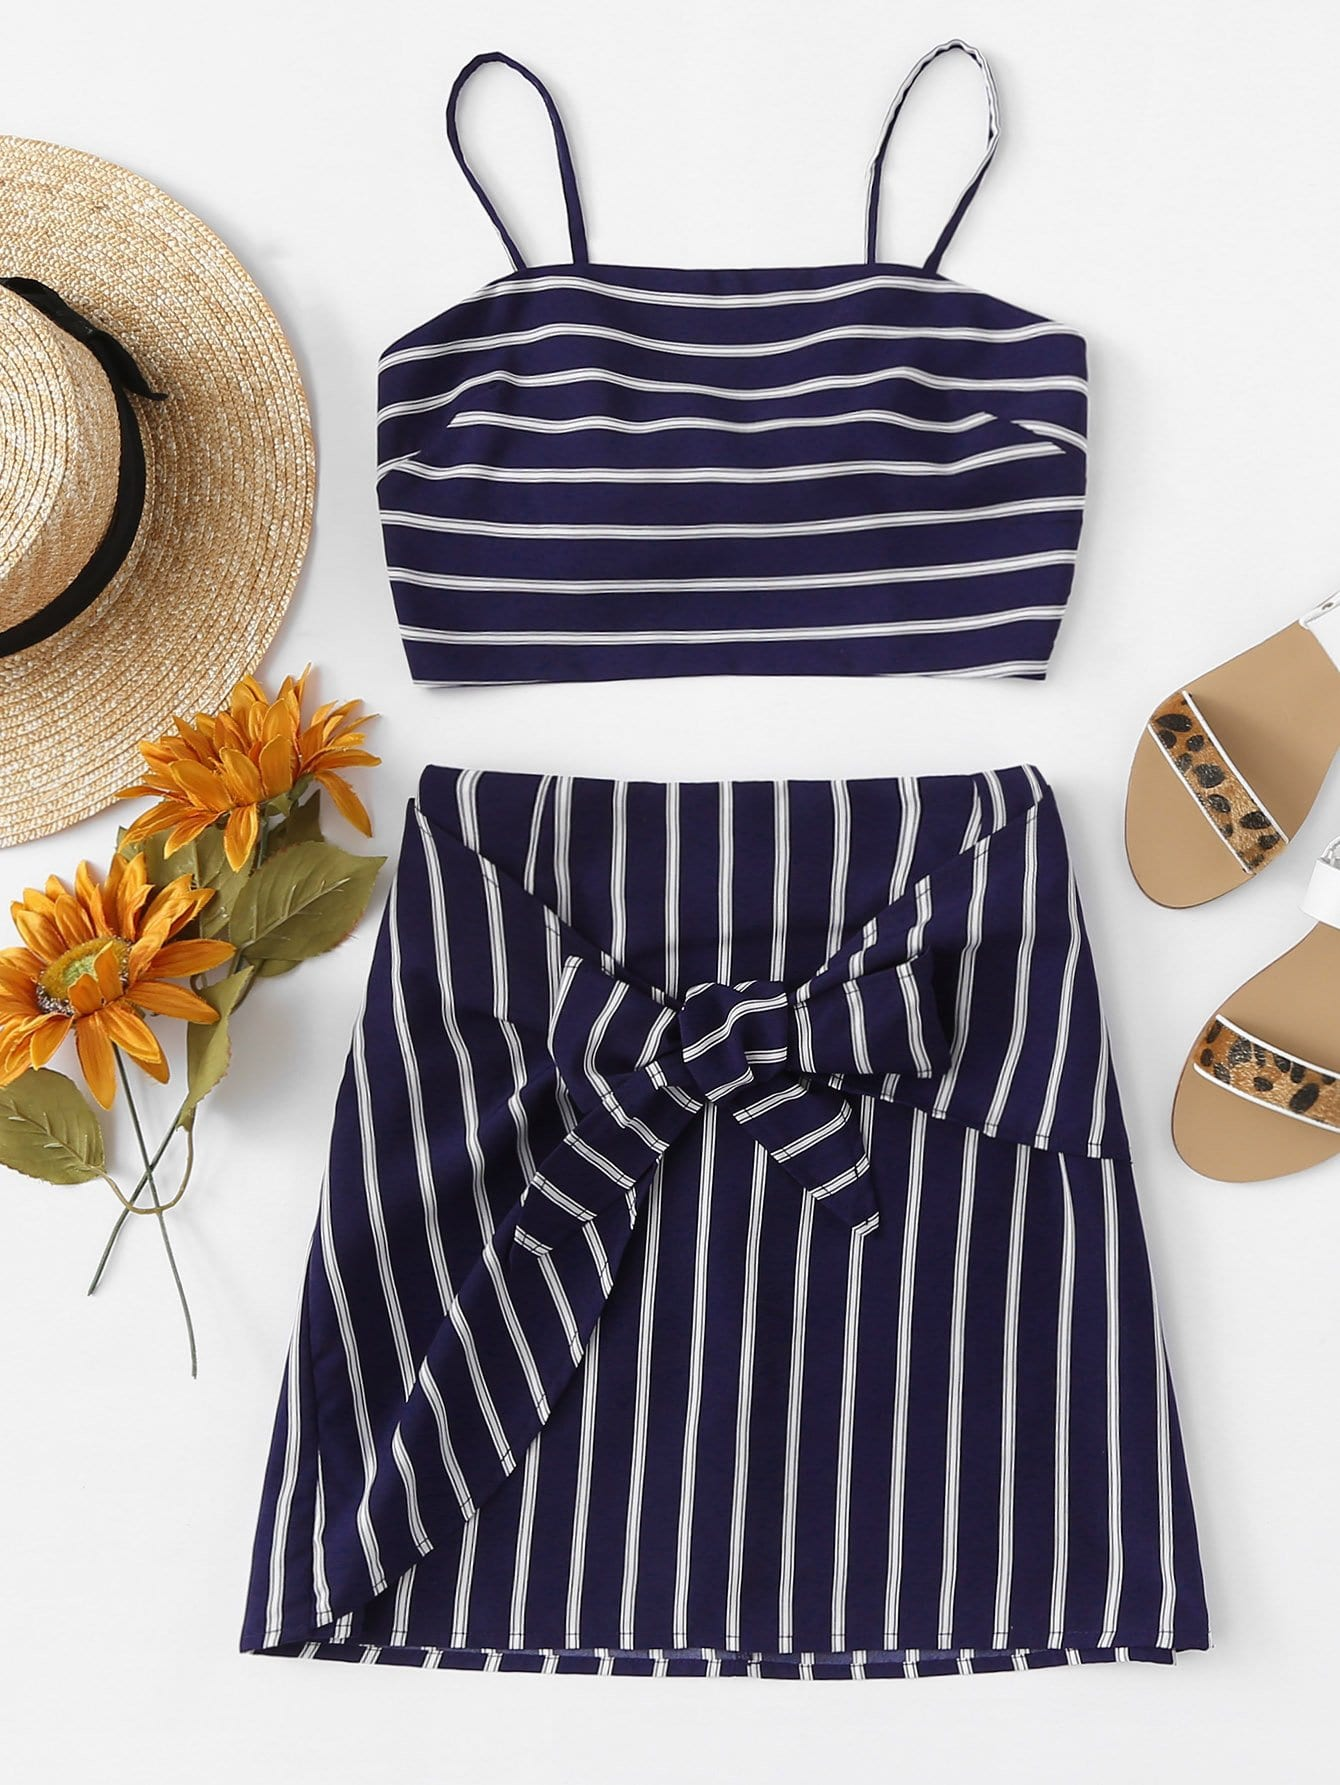 Tie Detail Striped Cami Top With Skirt obi tie outerwear with epaulet detail